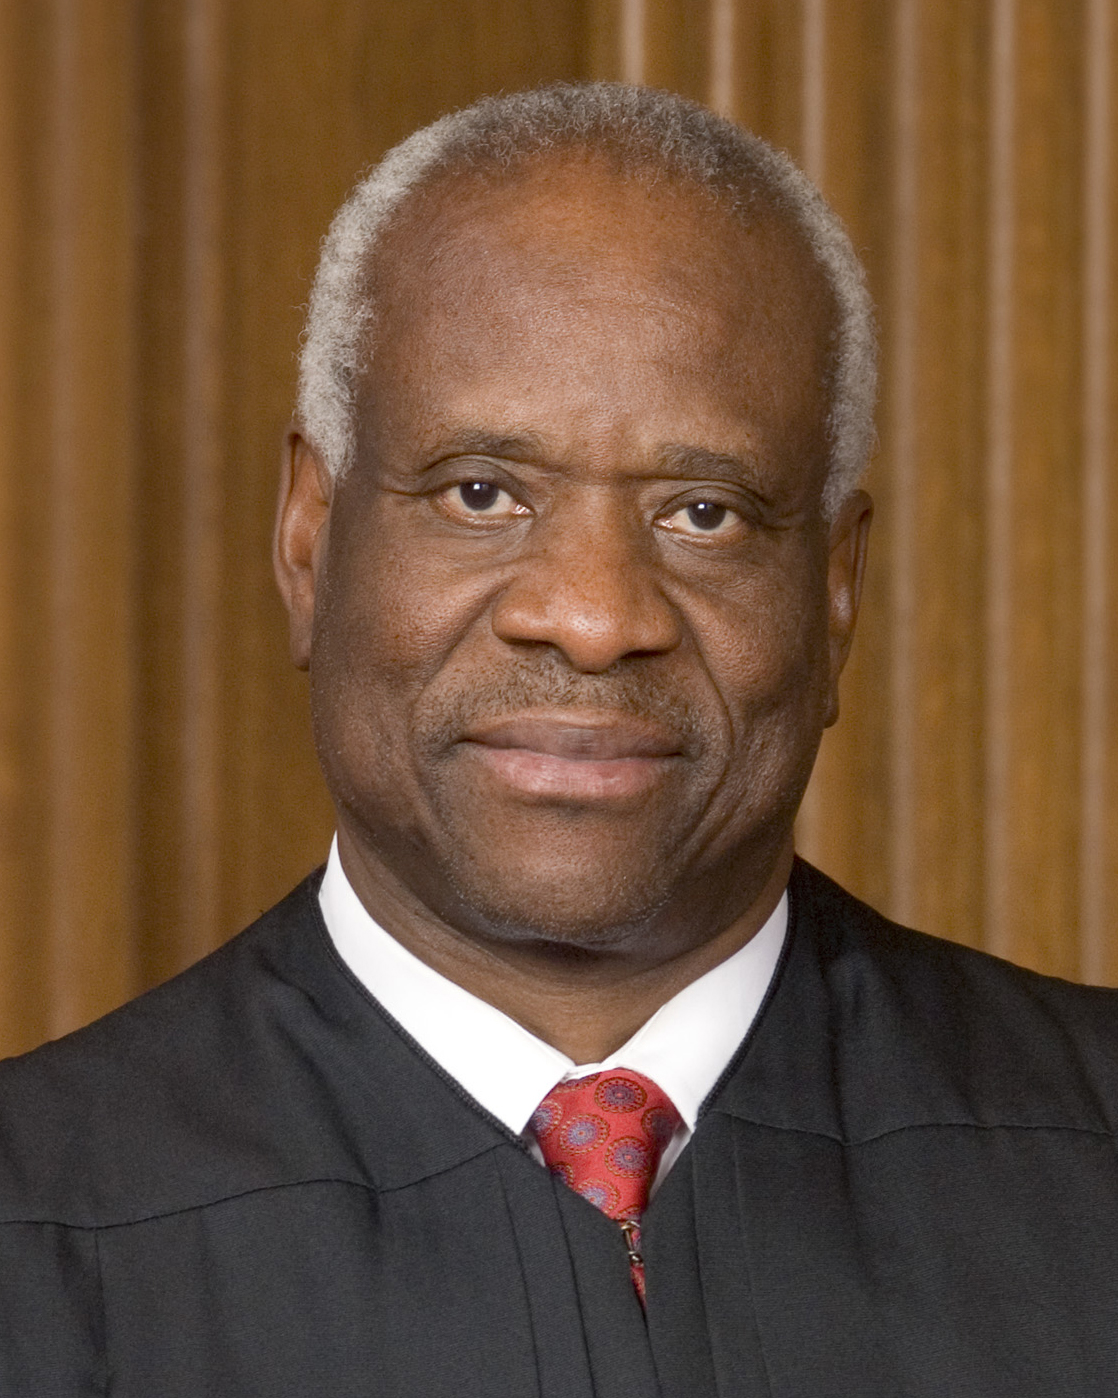 The star of this show: Justice Clarence Thomas. Source: Wikipedia (linked).